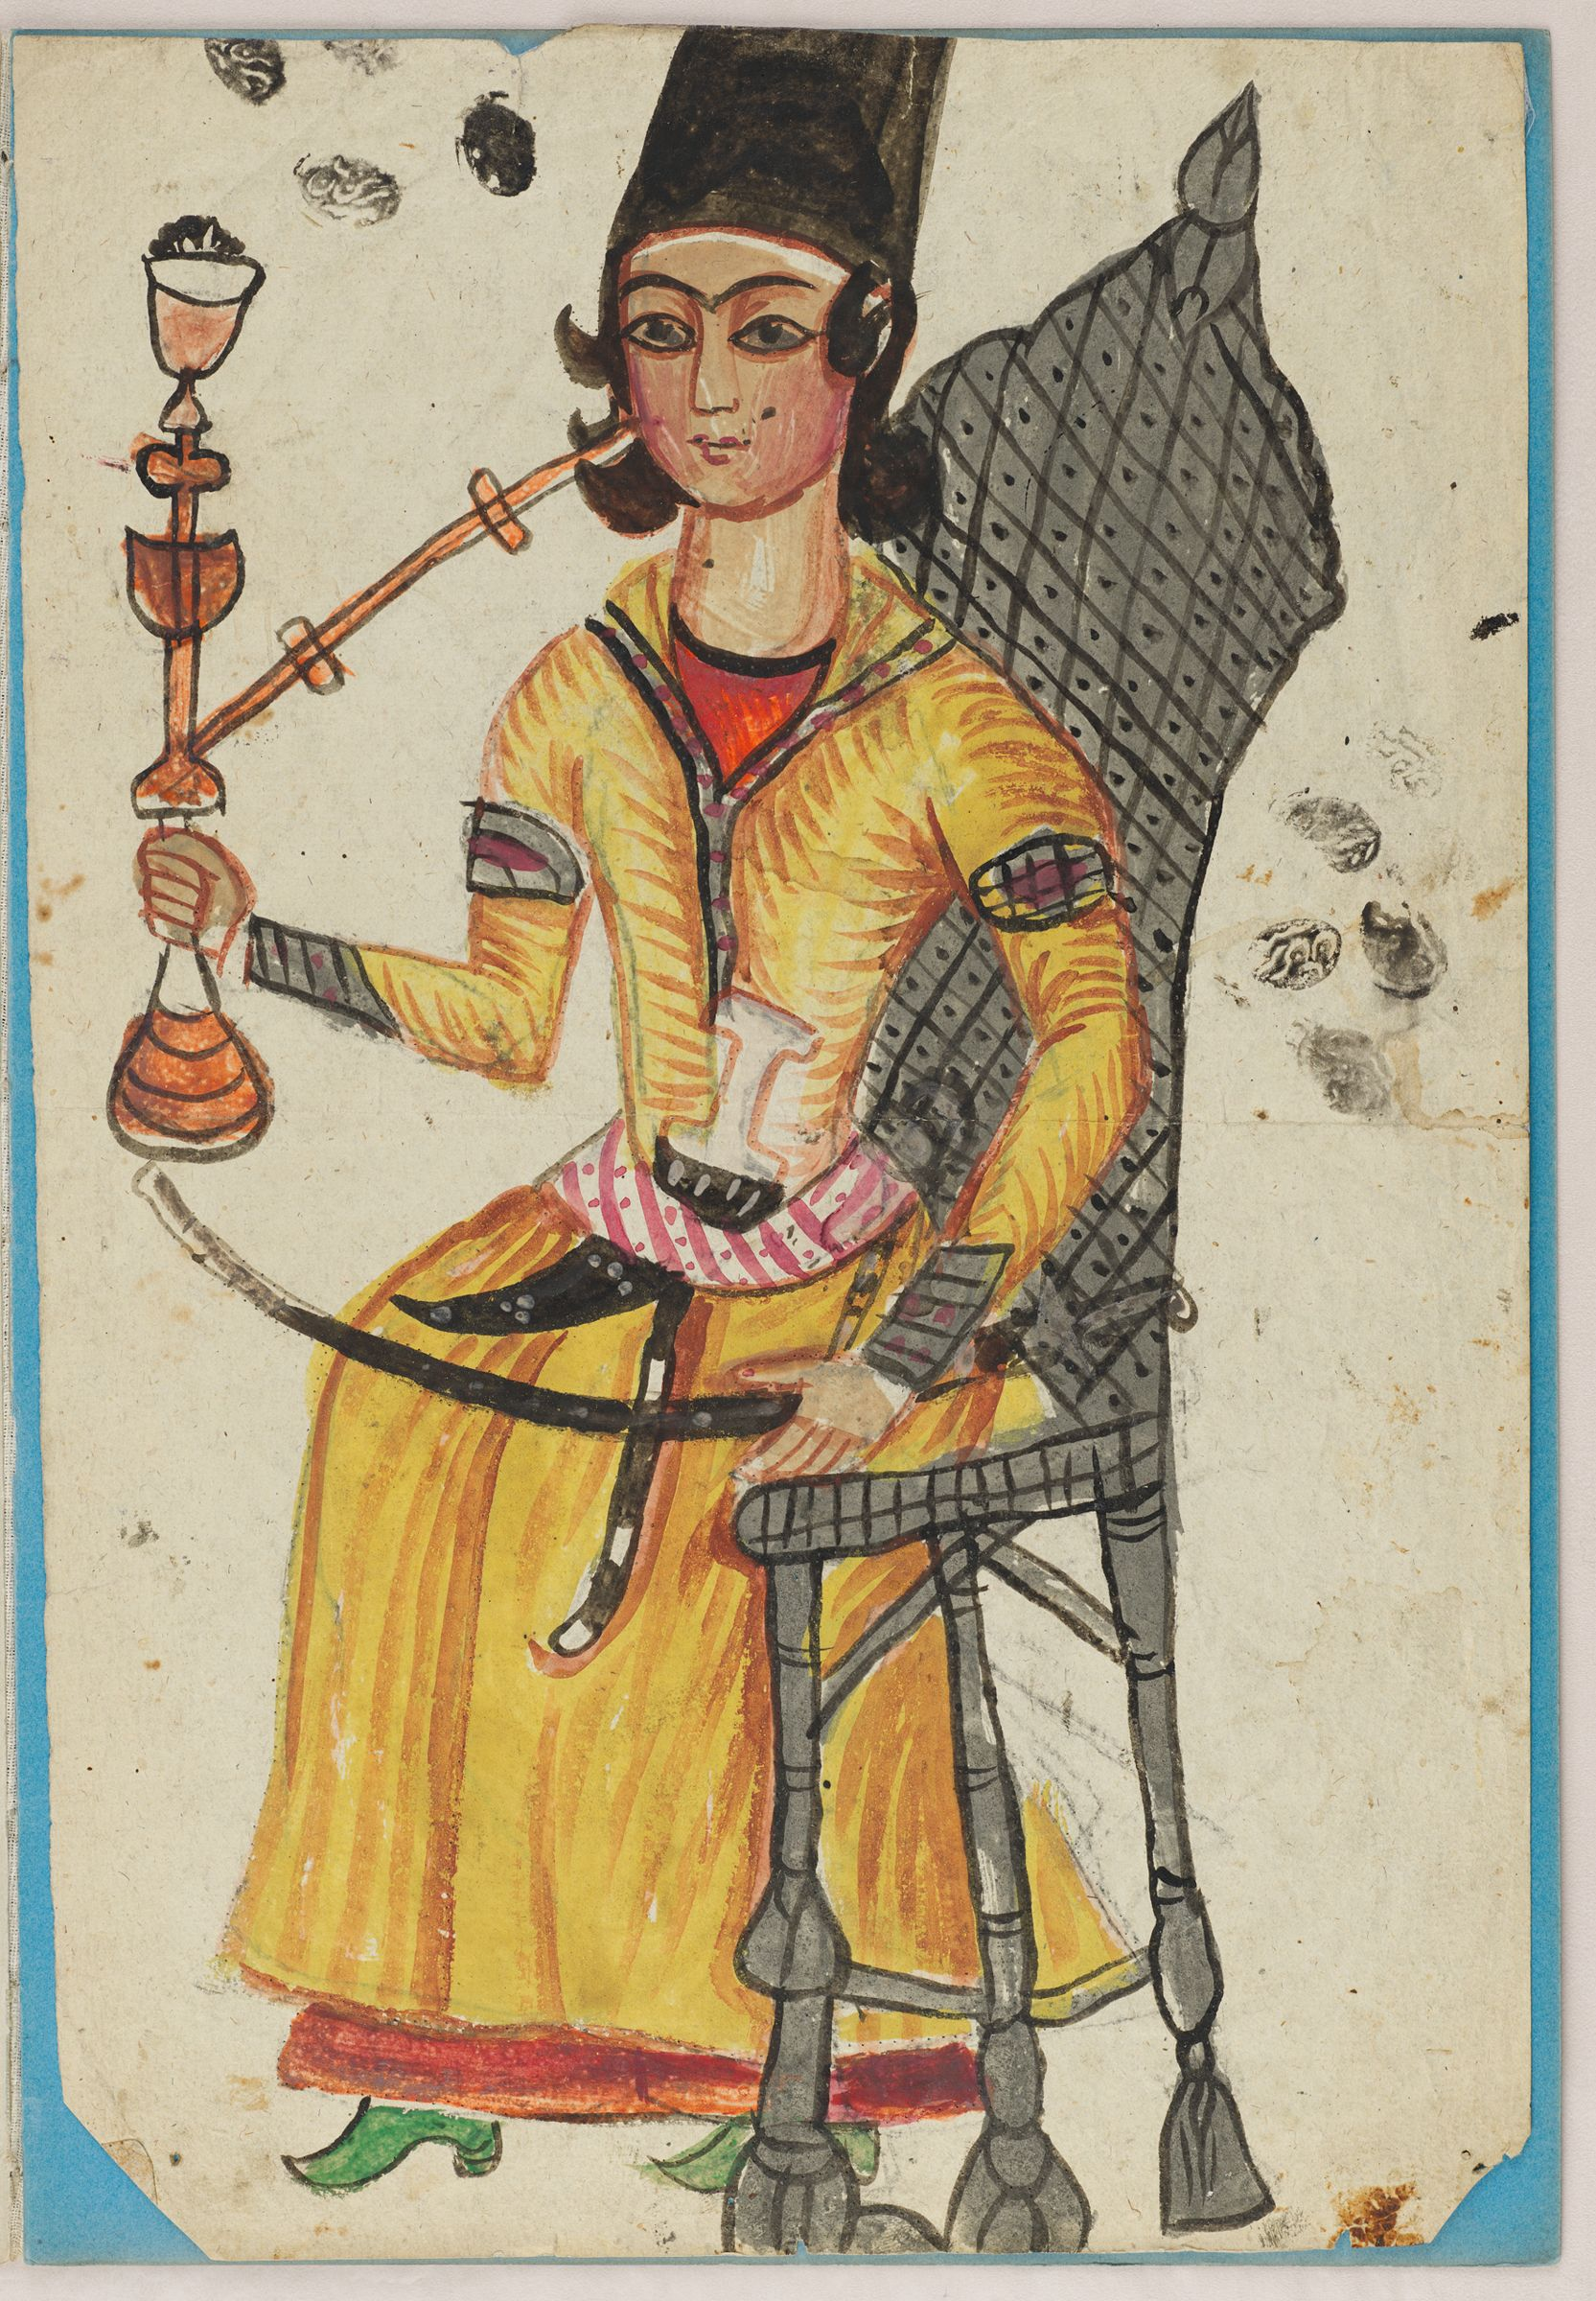 Folio 47 From An Album Of Drawings And Paintings: Man Splitting Wood (Recto); Qajar Youth Seated In A Chair With Waterpipe And Sword (Verso)